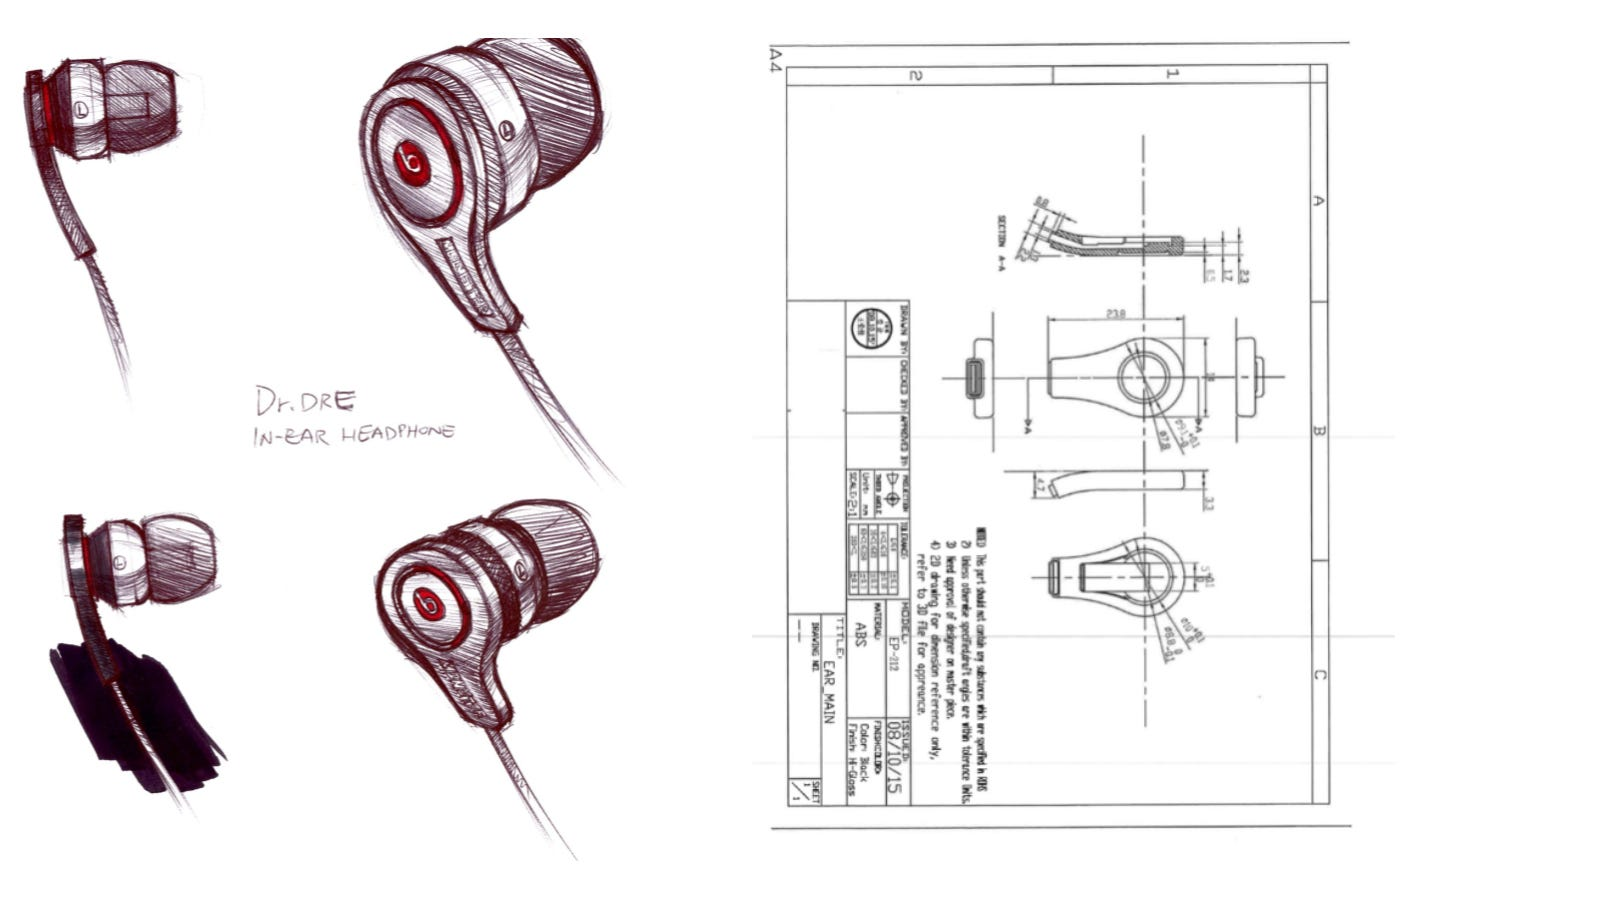 heavy duty earbuds cords - Beat By Dre: The Exclusive Inside Story of How Monster Lost the World